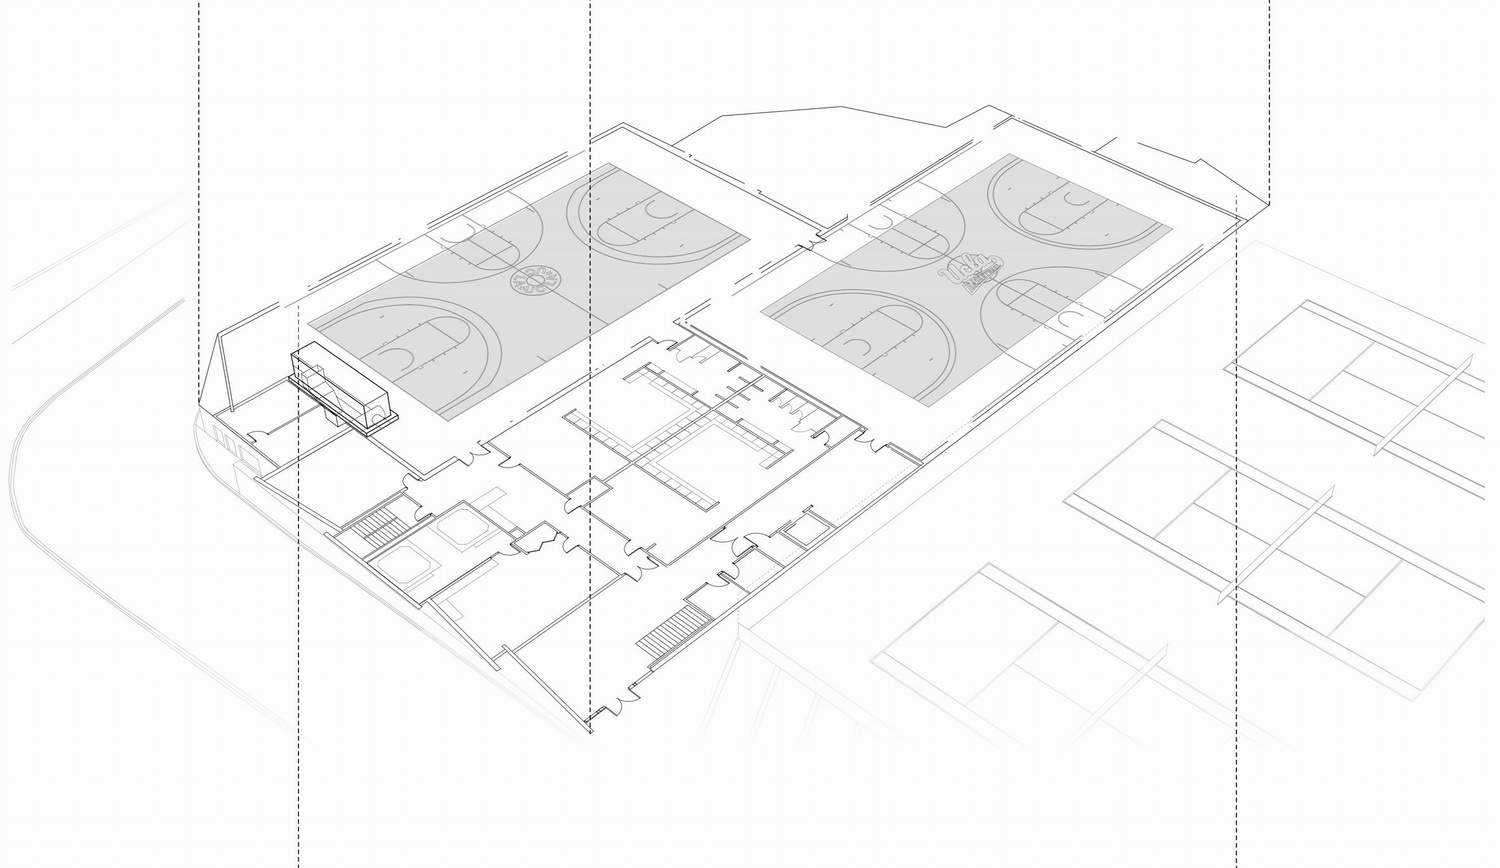 调整大小 ucla-basketball-facility-kevin-daly-architects-architecture-los-angeles-california-usa_dezeen_2364_floor-diagram.jpg